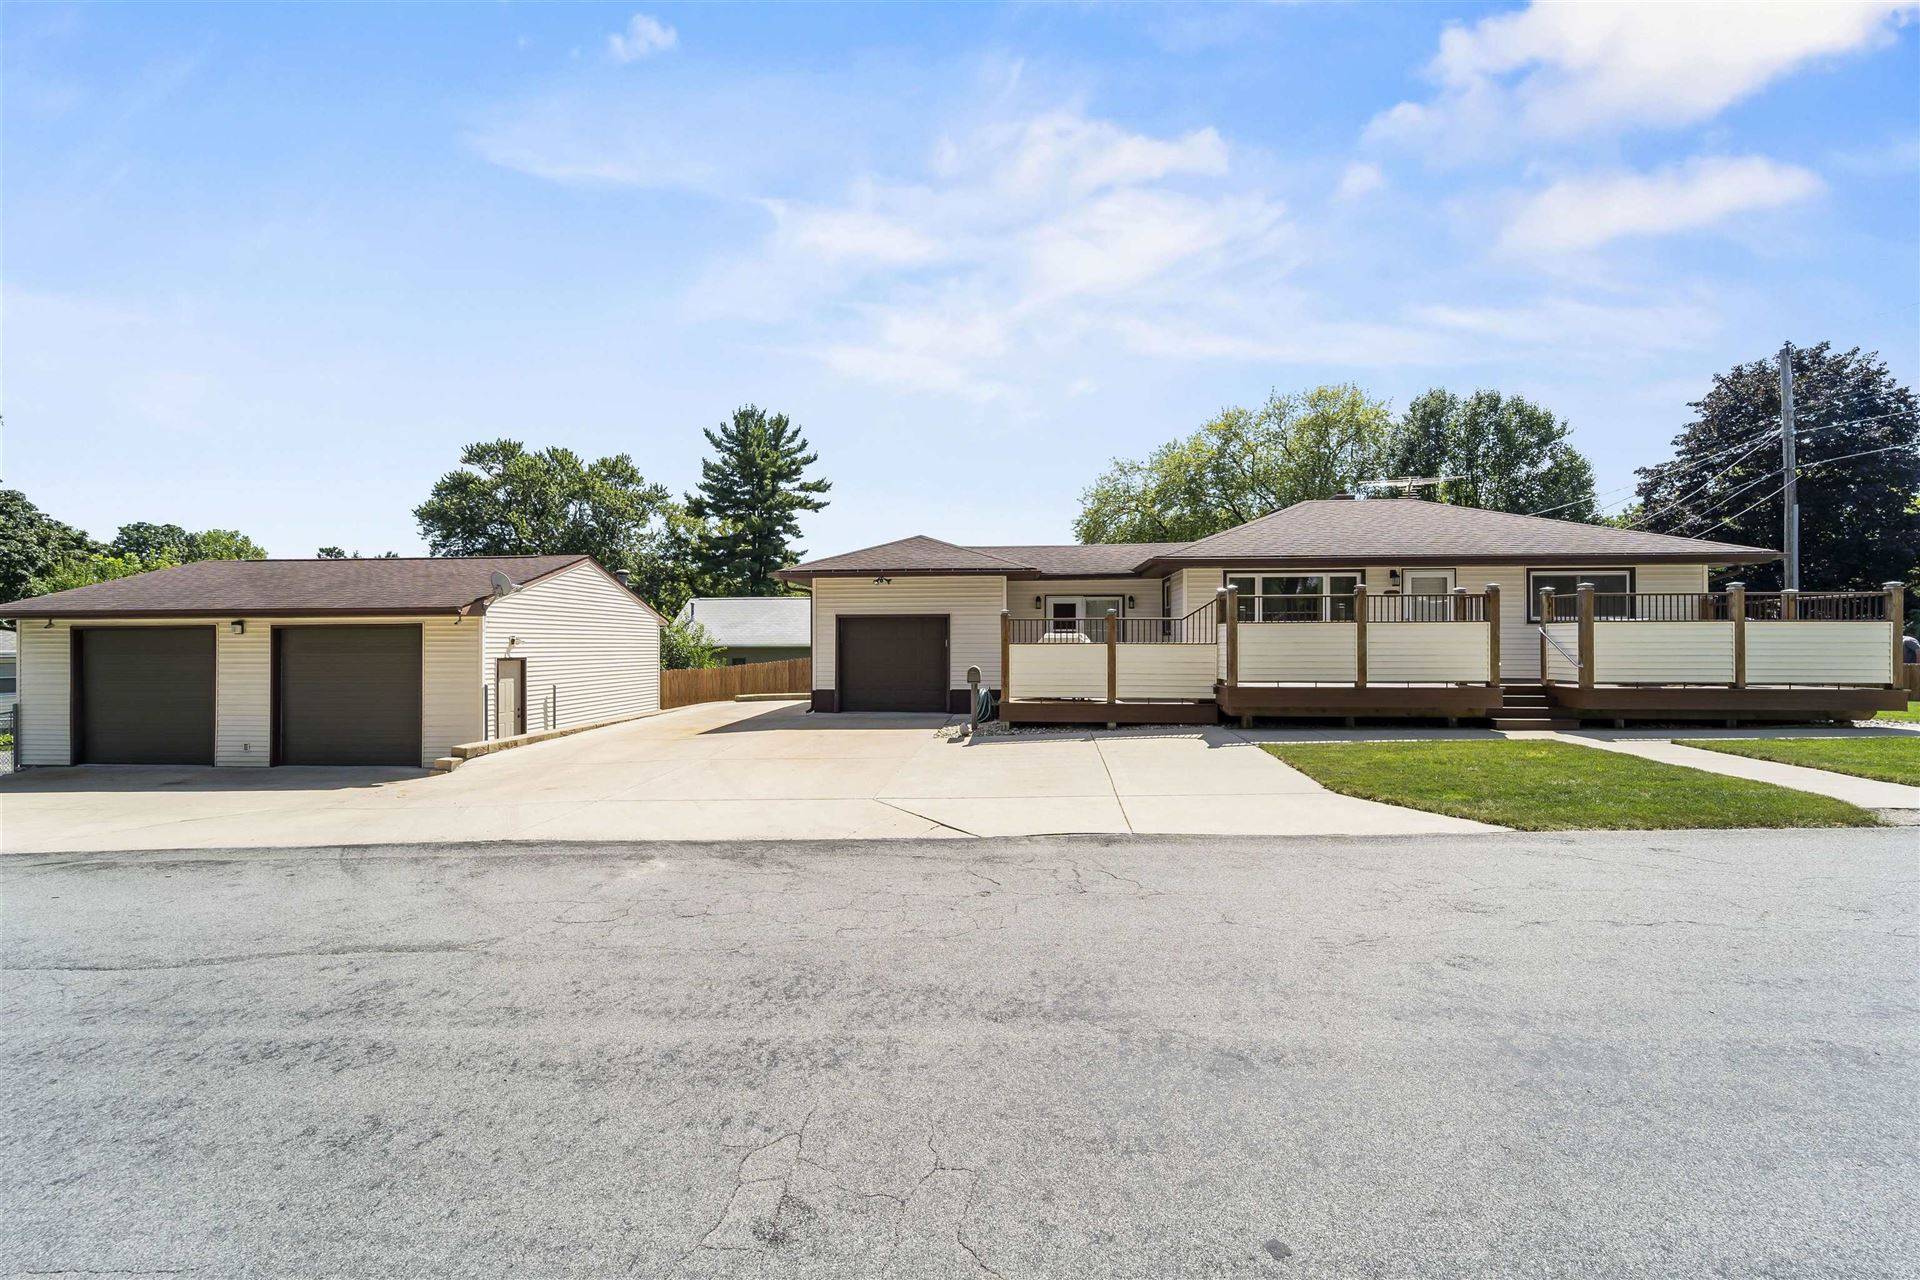 3417 Home Ave, Madison, WI 53714 - #: 1917635